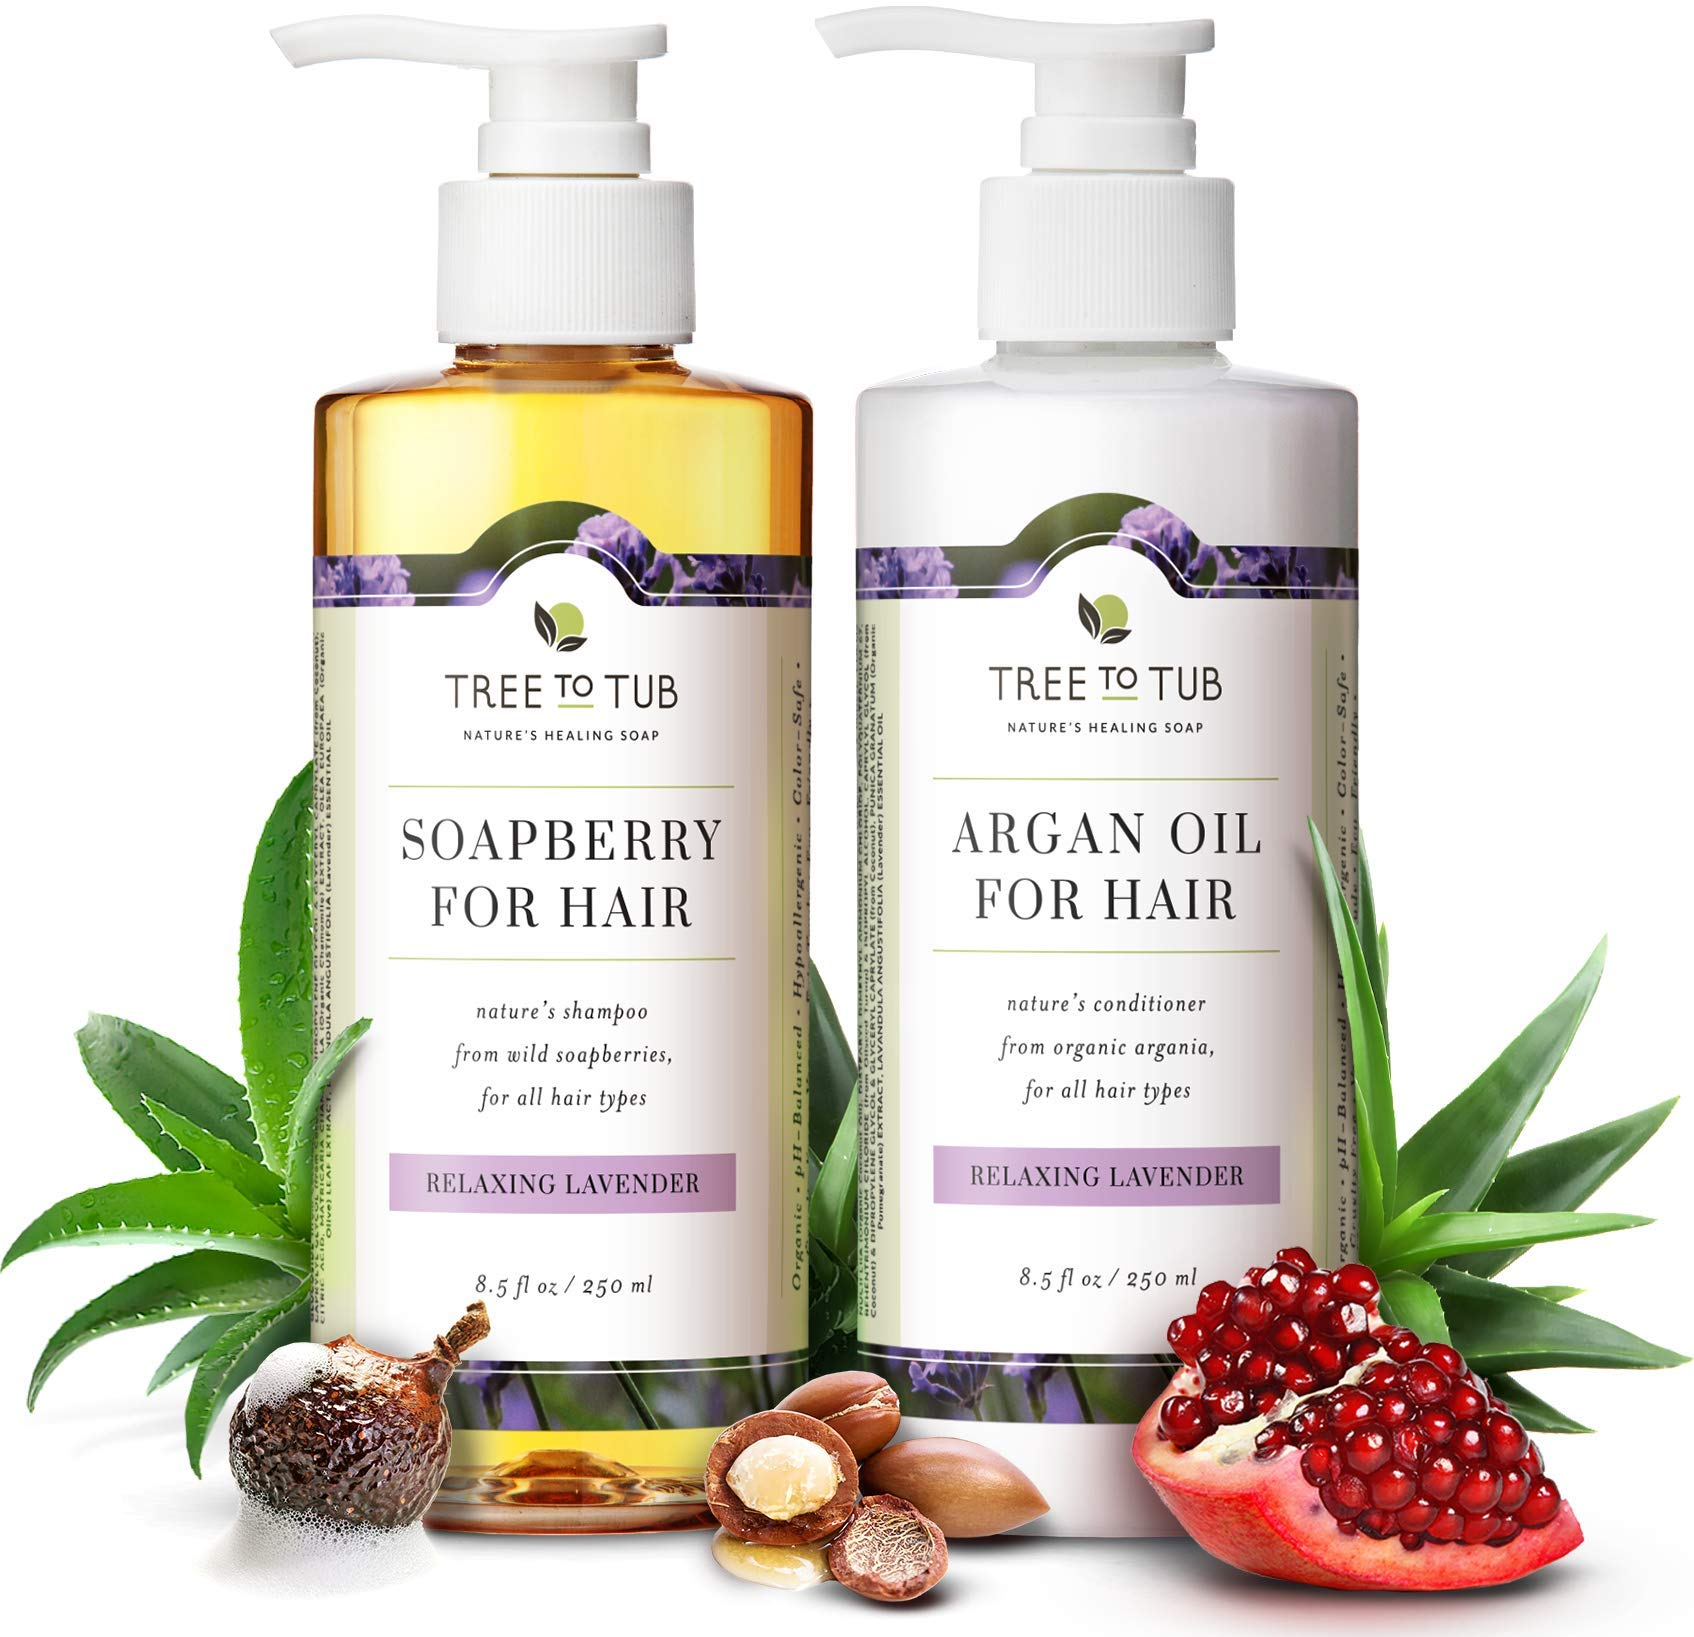 Gentle Argan Oil Shampoo & Conditioner by Tree to Tub-pH 5.5 Balanced Moisturizing Duo with Wild Soapberry & Organic Moroccan Oil - Nourishes Dry Hair & Very Sensitive Scalp, Sulfate Free (2 Pack) by Tree to Tub